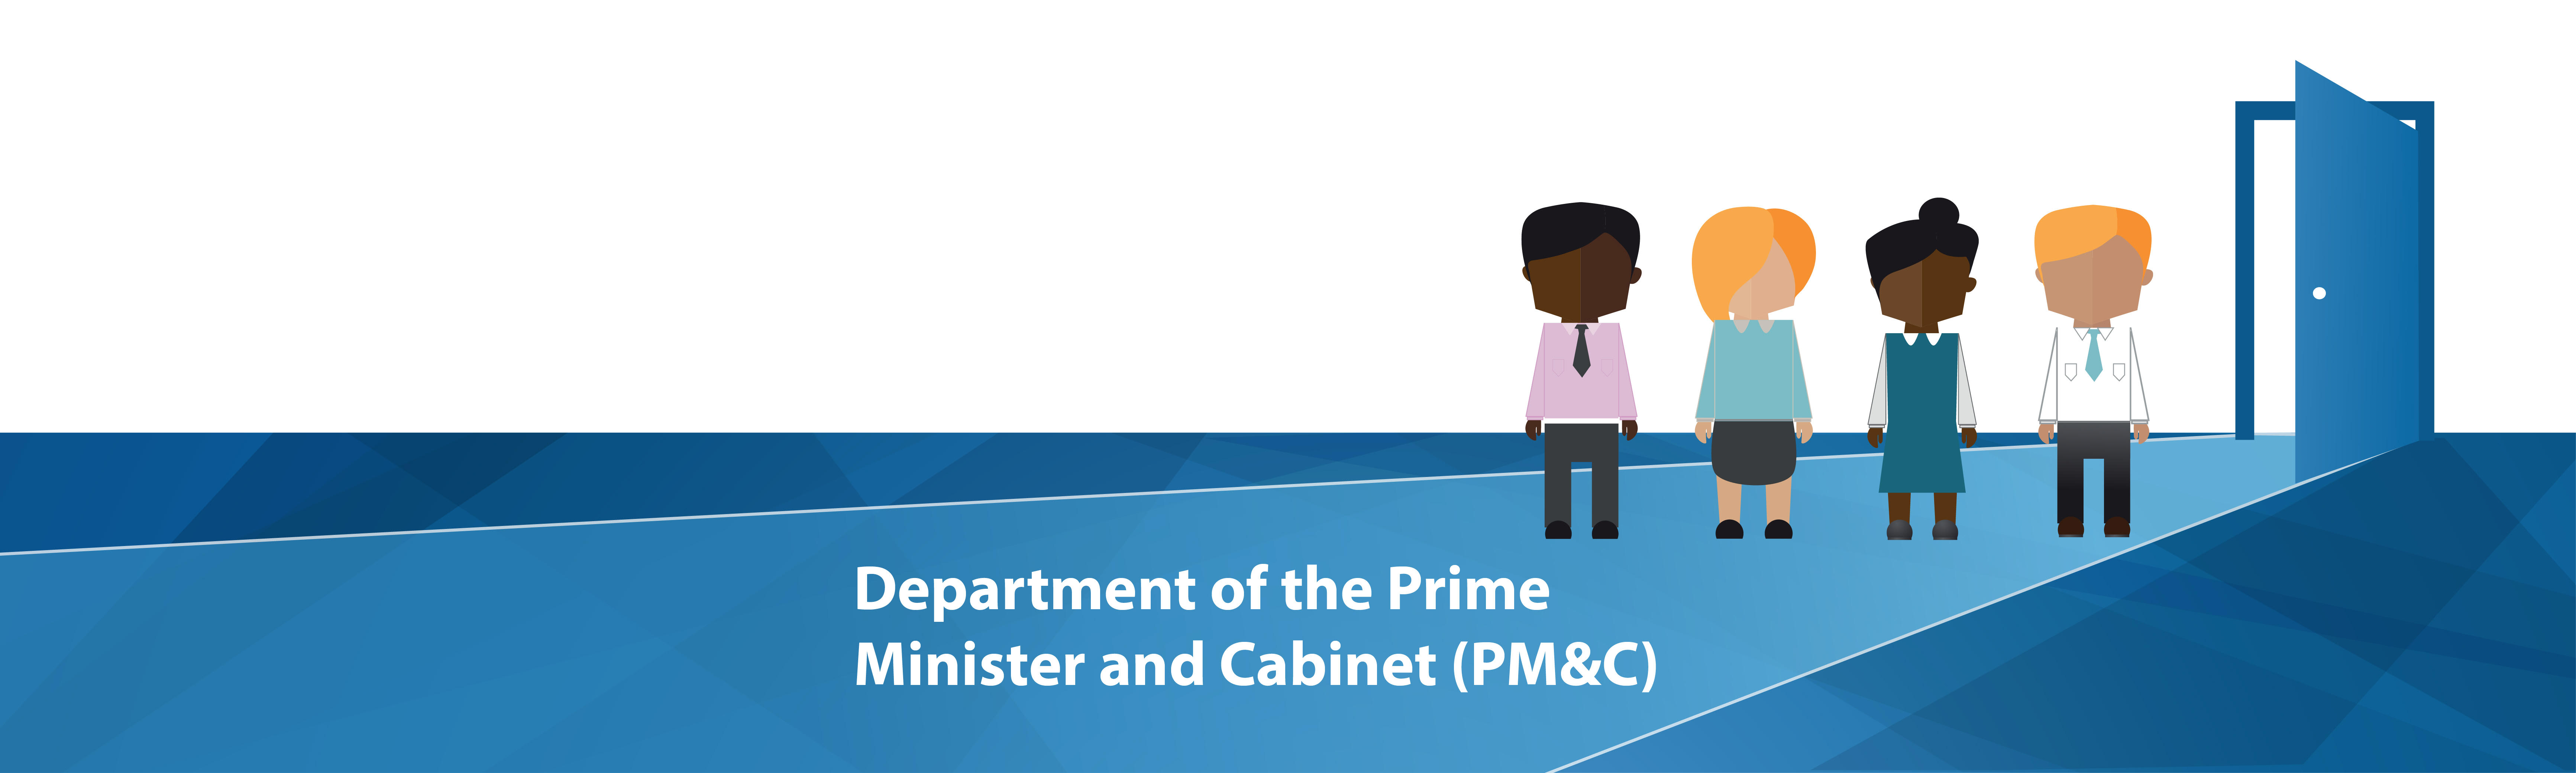 Department of the Prime Minister and Cabinet profile banner